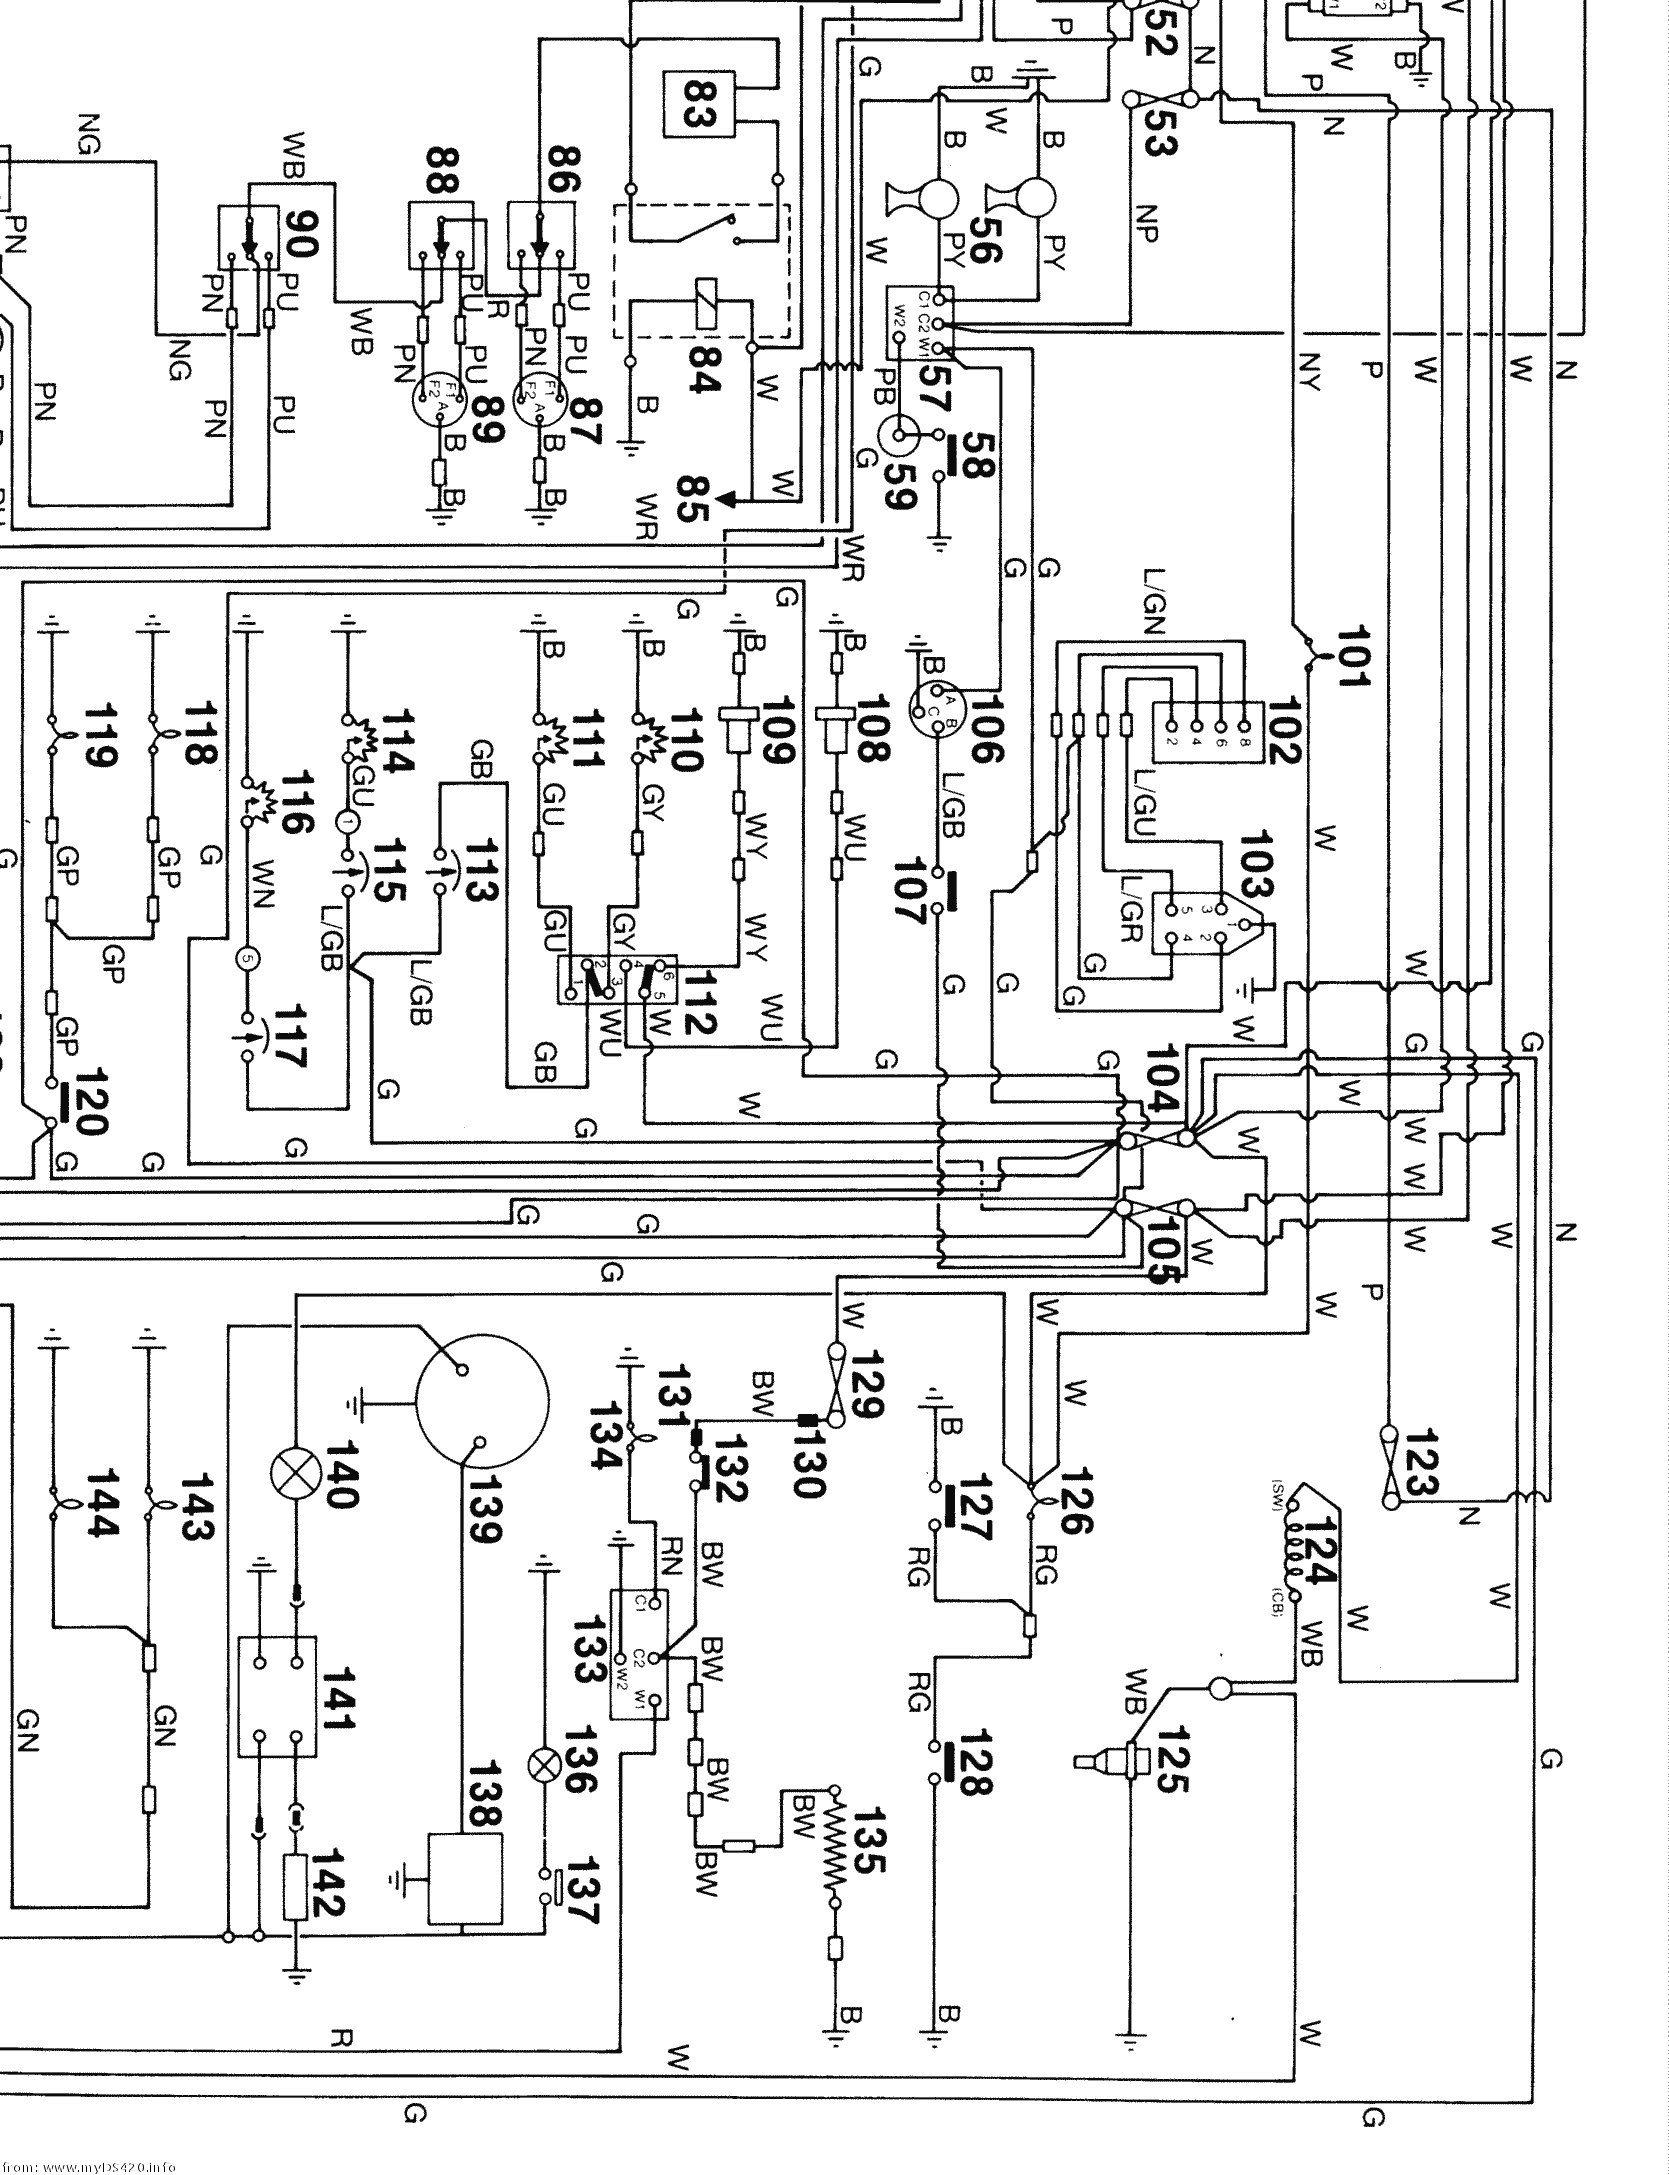 Yfz450 Wiring Diagram - Wiring Diagrams List